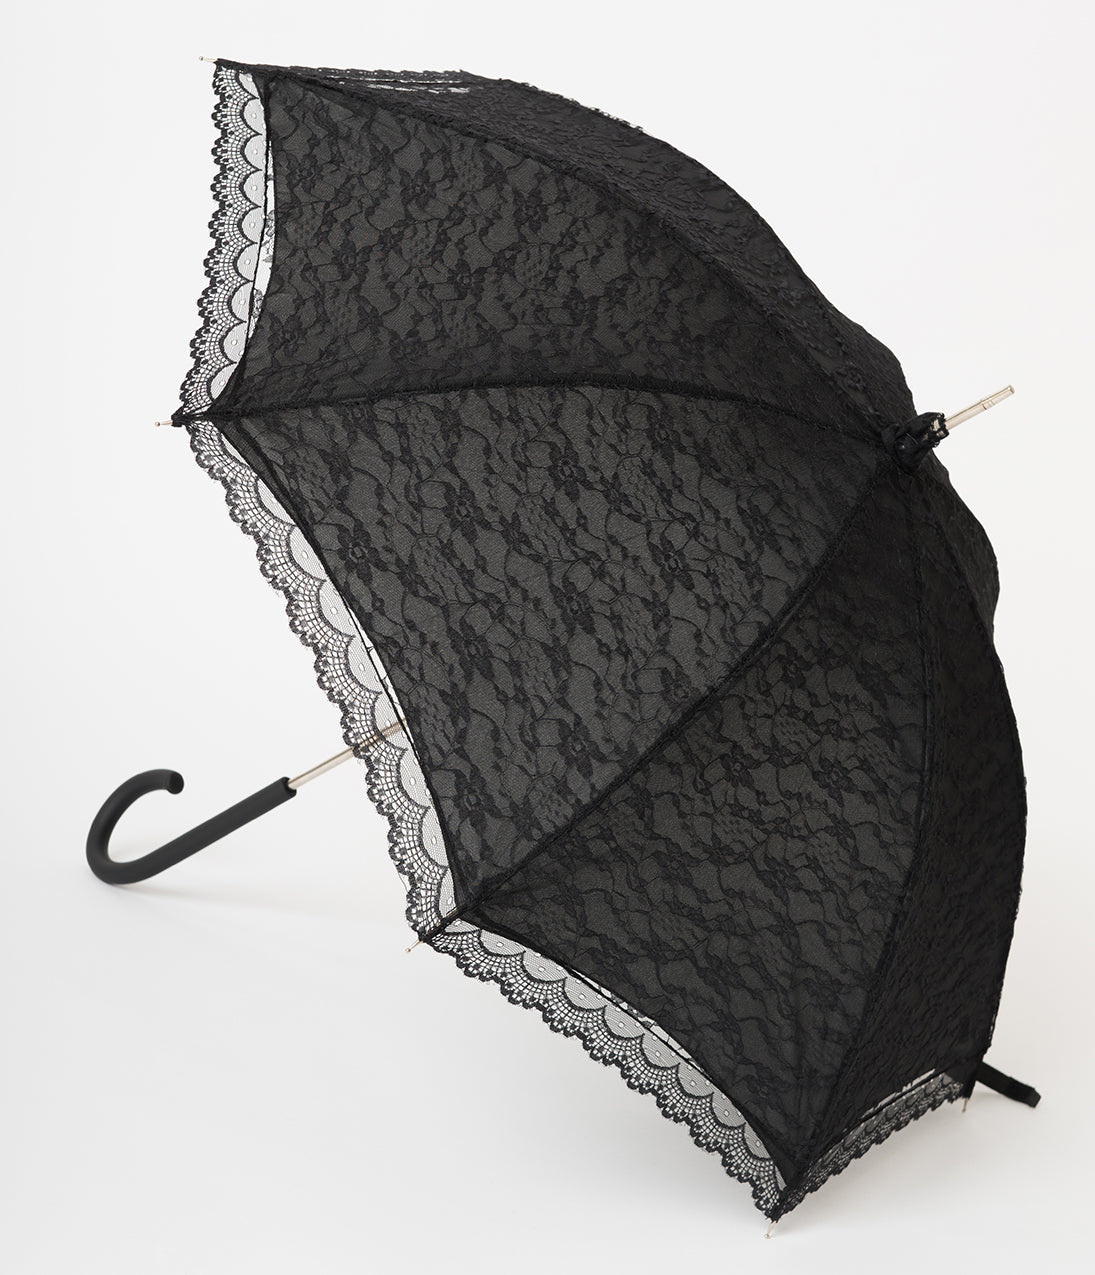 Vintage Style Parasols and Umbrellas Victorian Style Black Lace Umbrella $38.00 AT vintagedancer.com